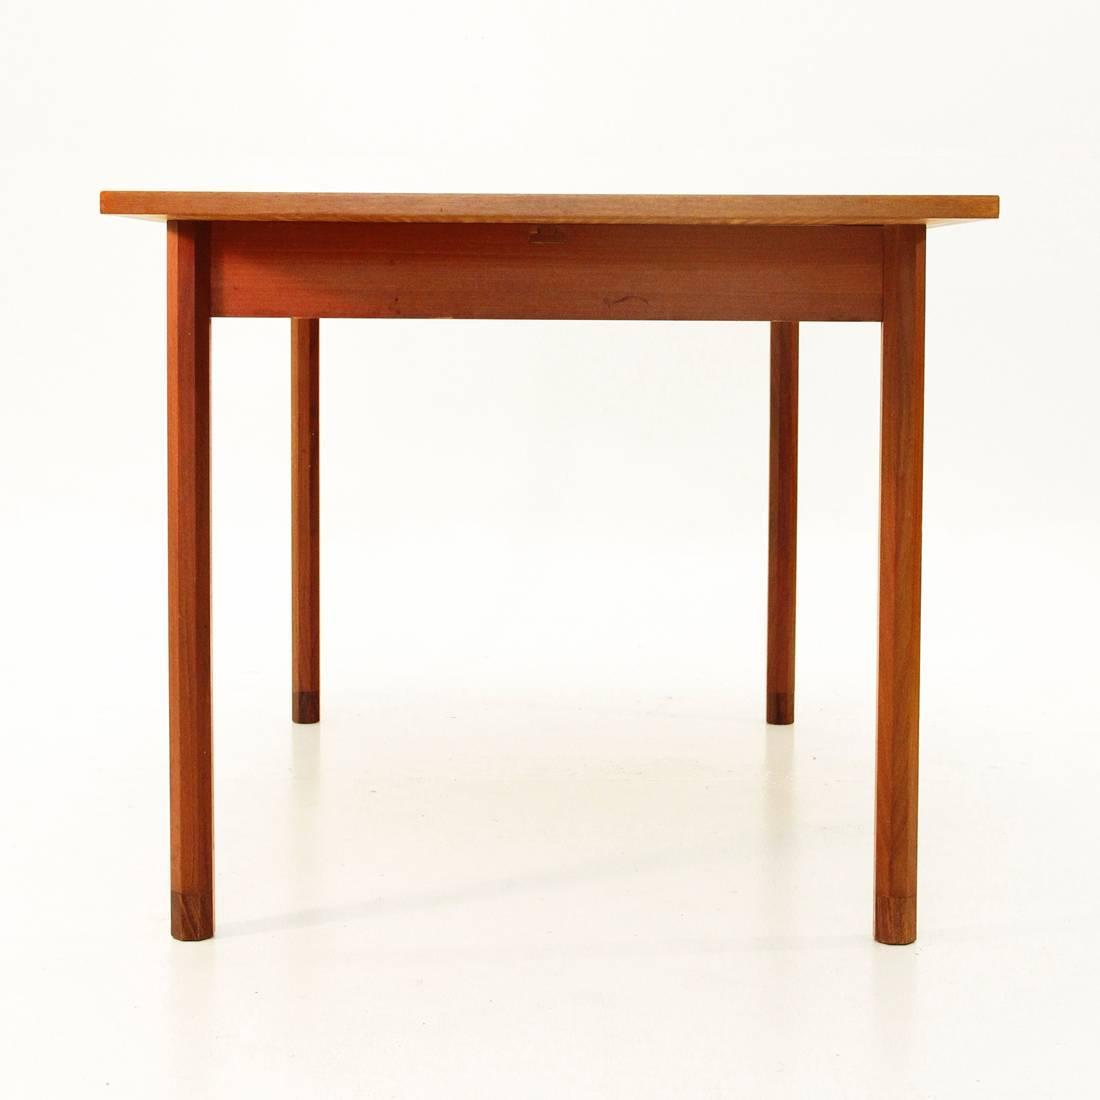 Italian rosewood extensible table 1960s for sale at 1stdibs - Petite table extensible ...